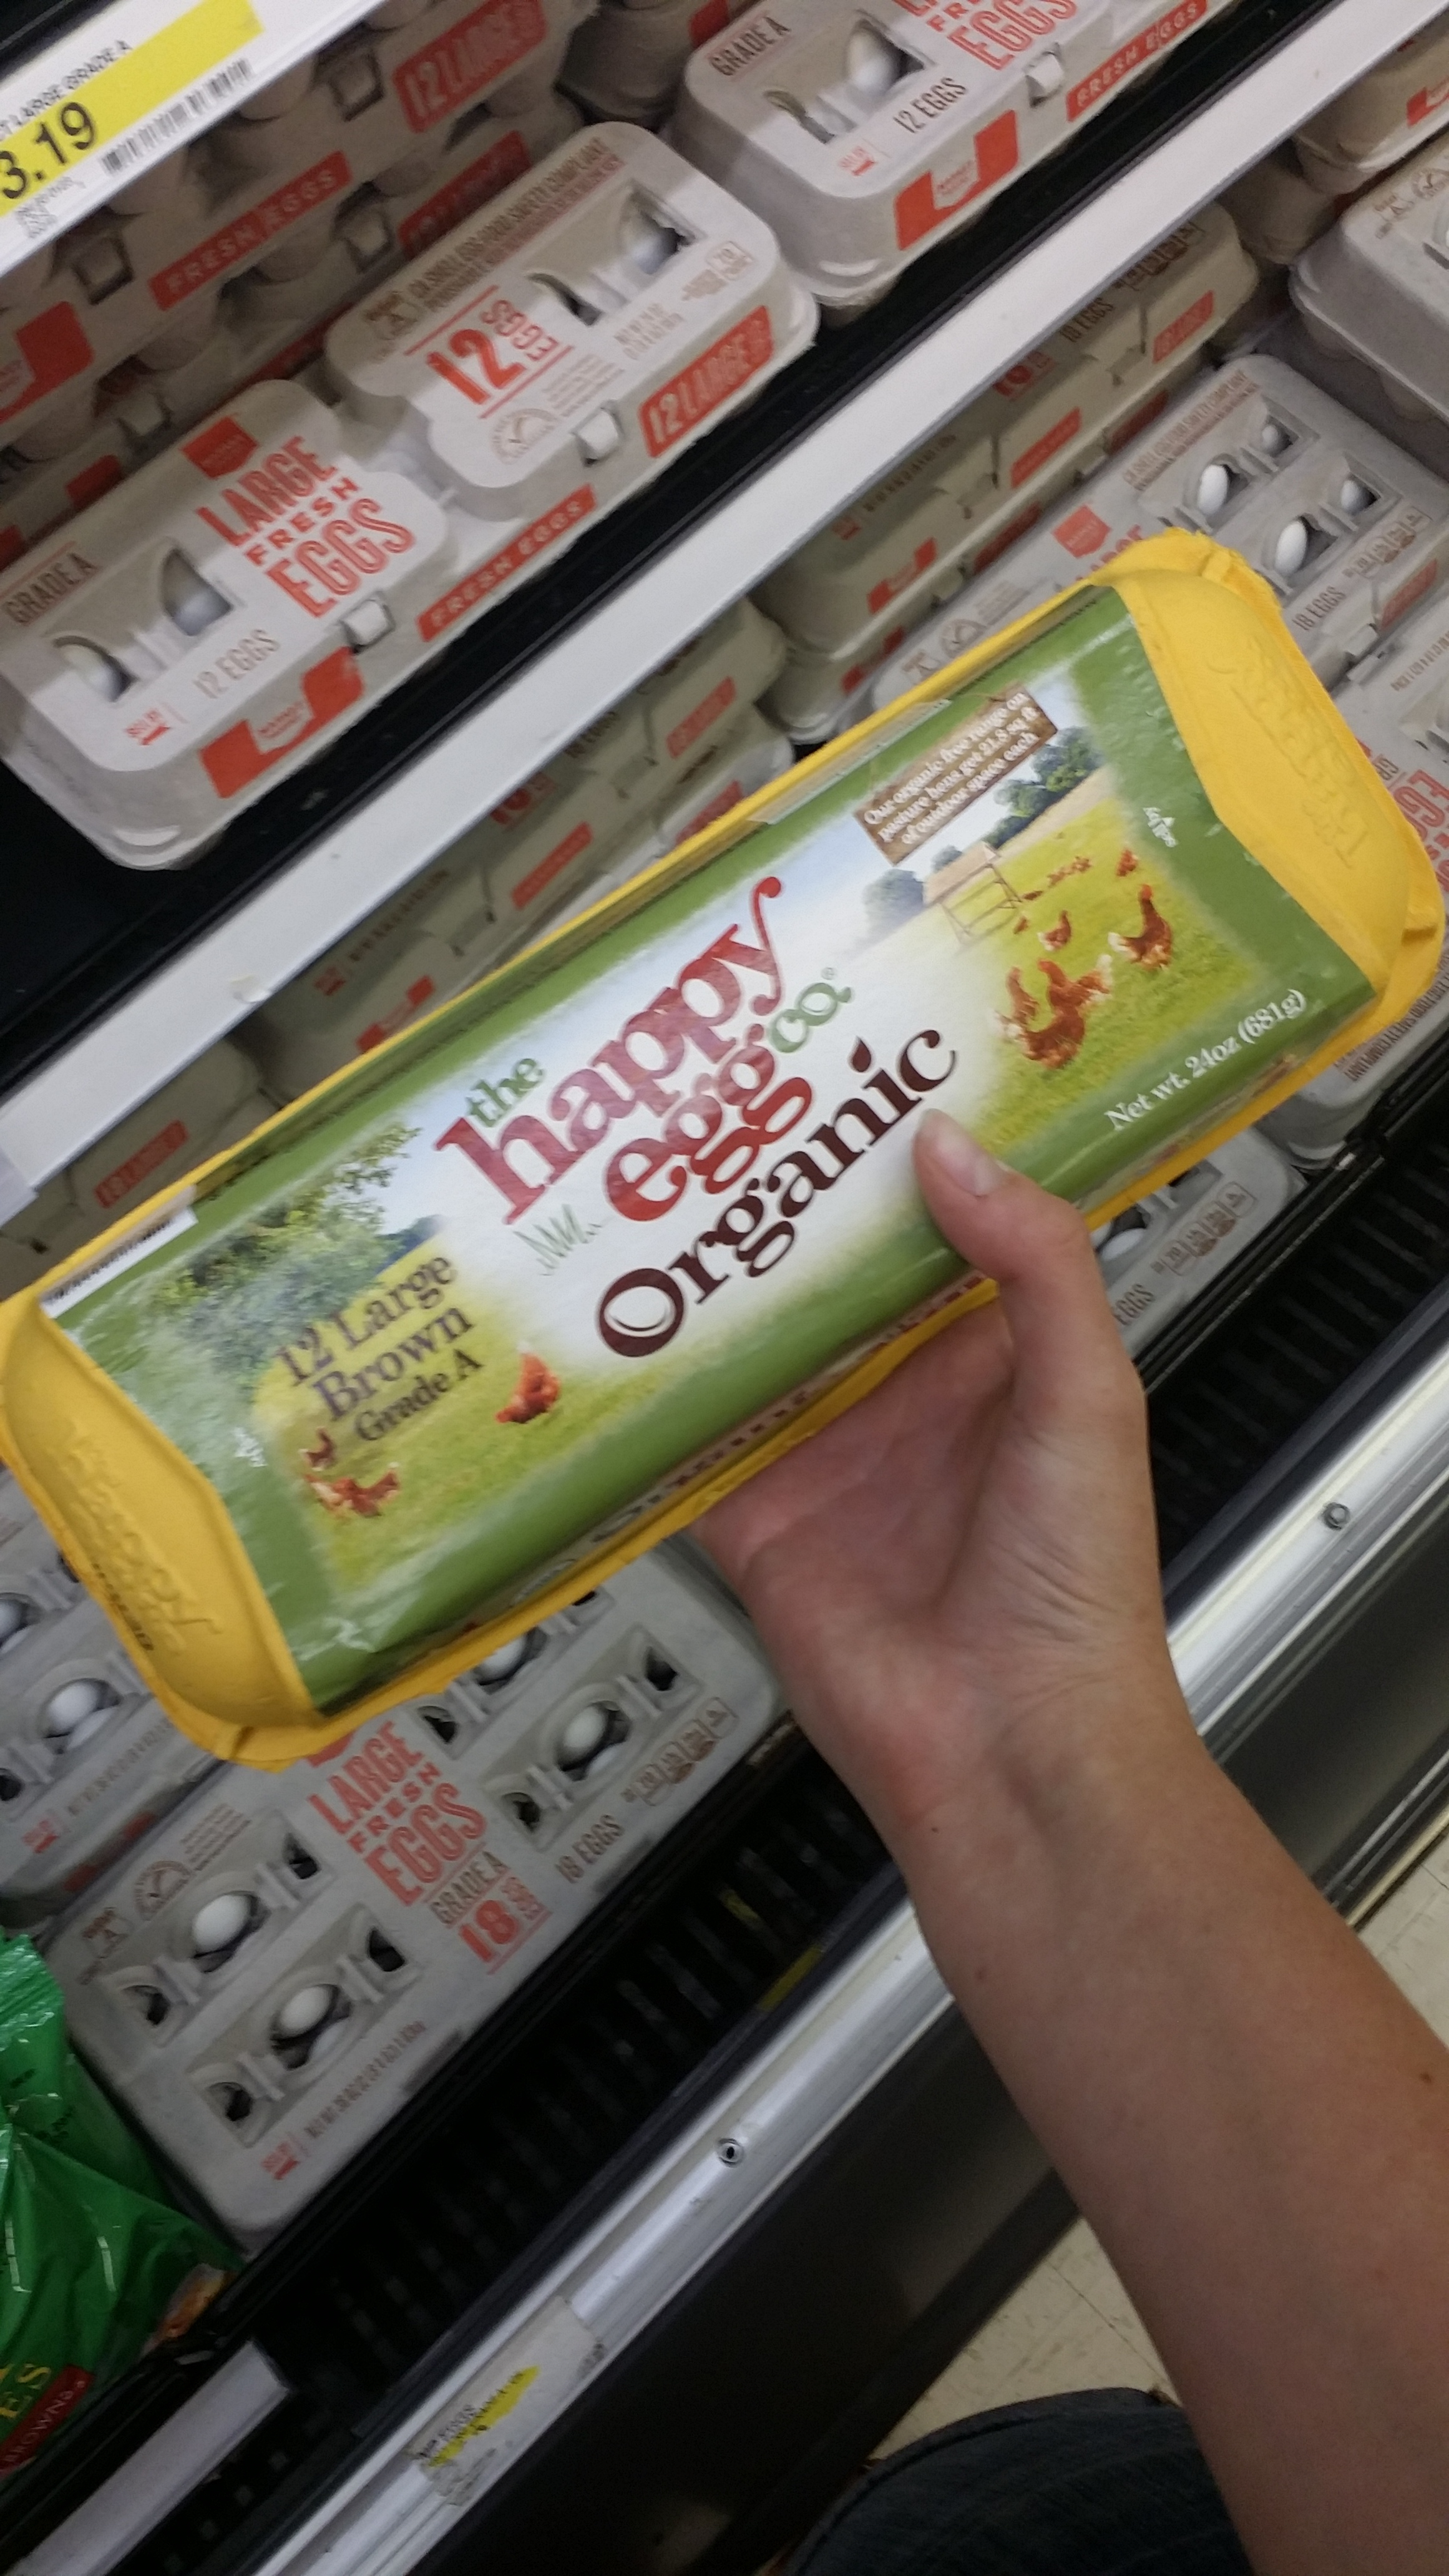 Certified humane eggs that come in a carton that can be composted. You will have to remove the sticker which is trash.